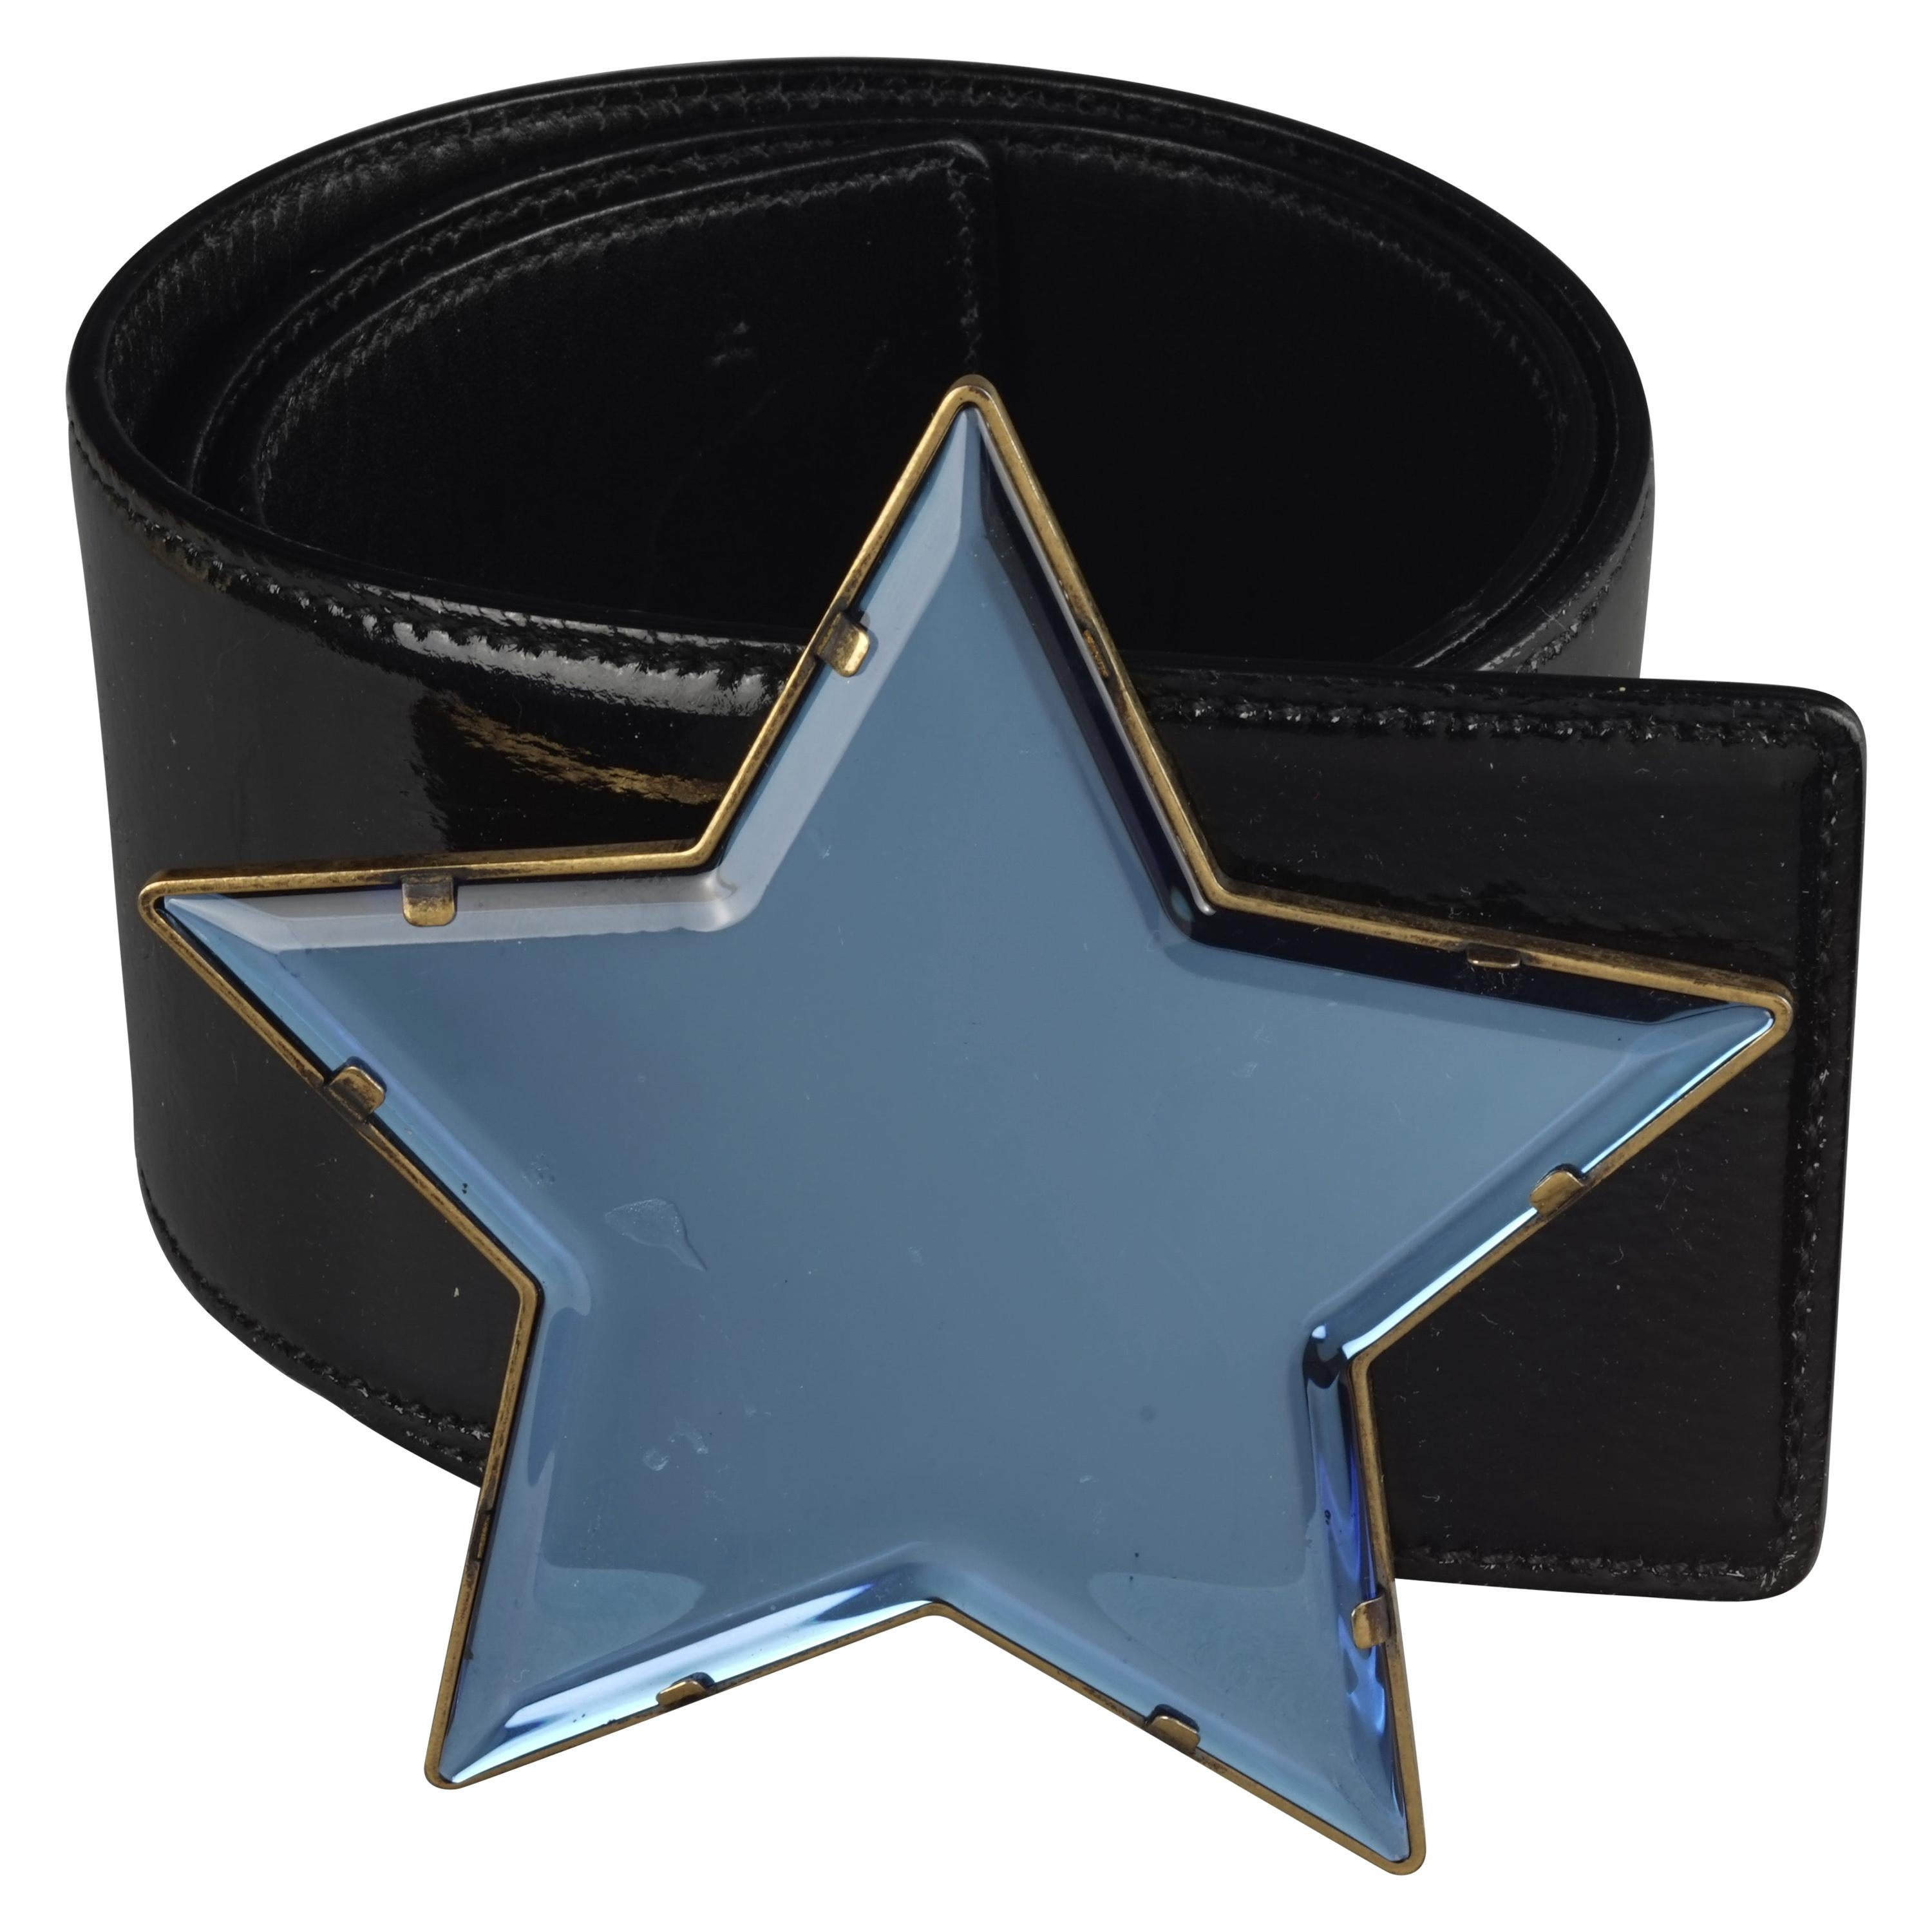 Vintage Massive YVES SAINT LAURENT Ysl Star Mirror Plexiglass Buckle Belt